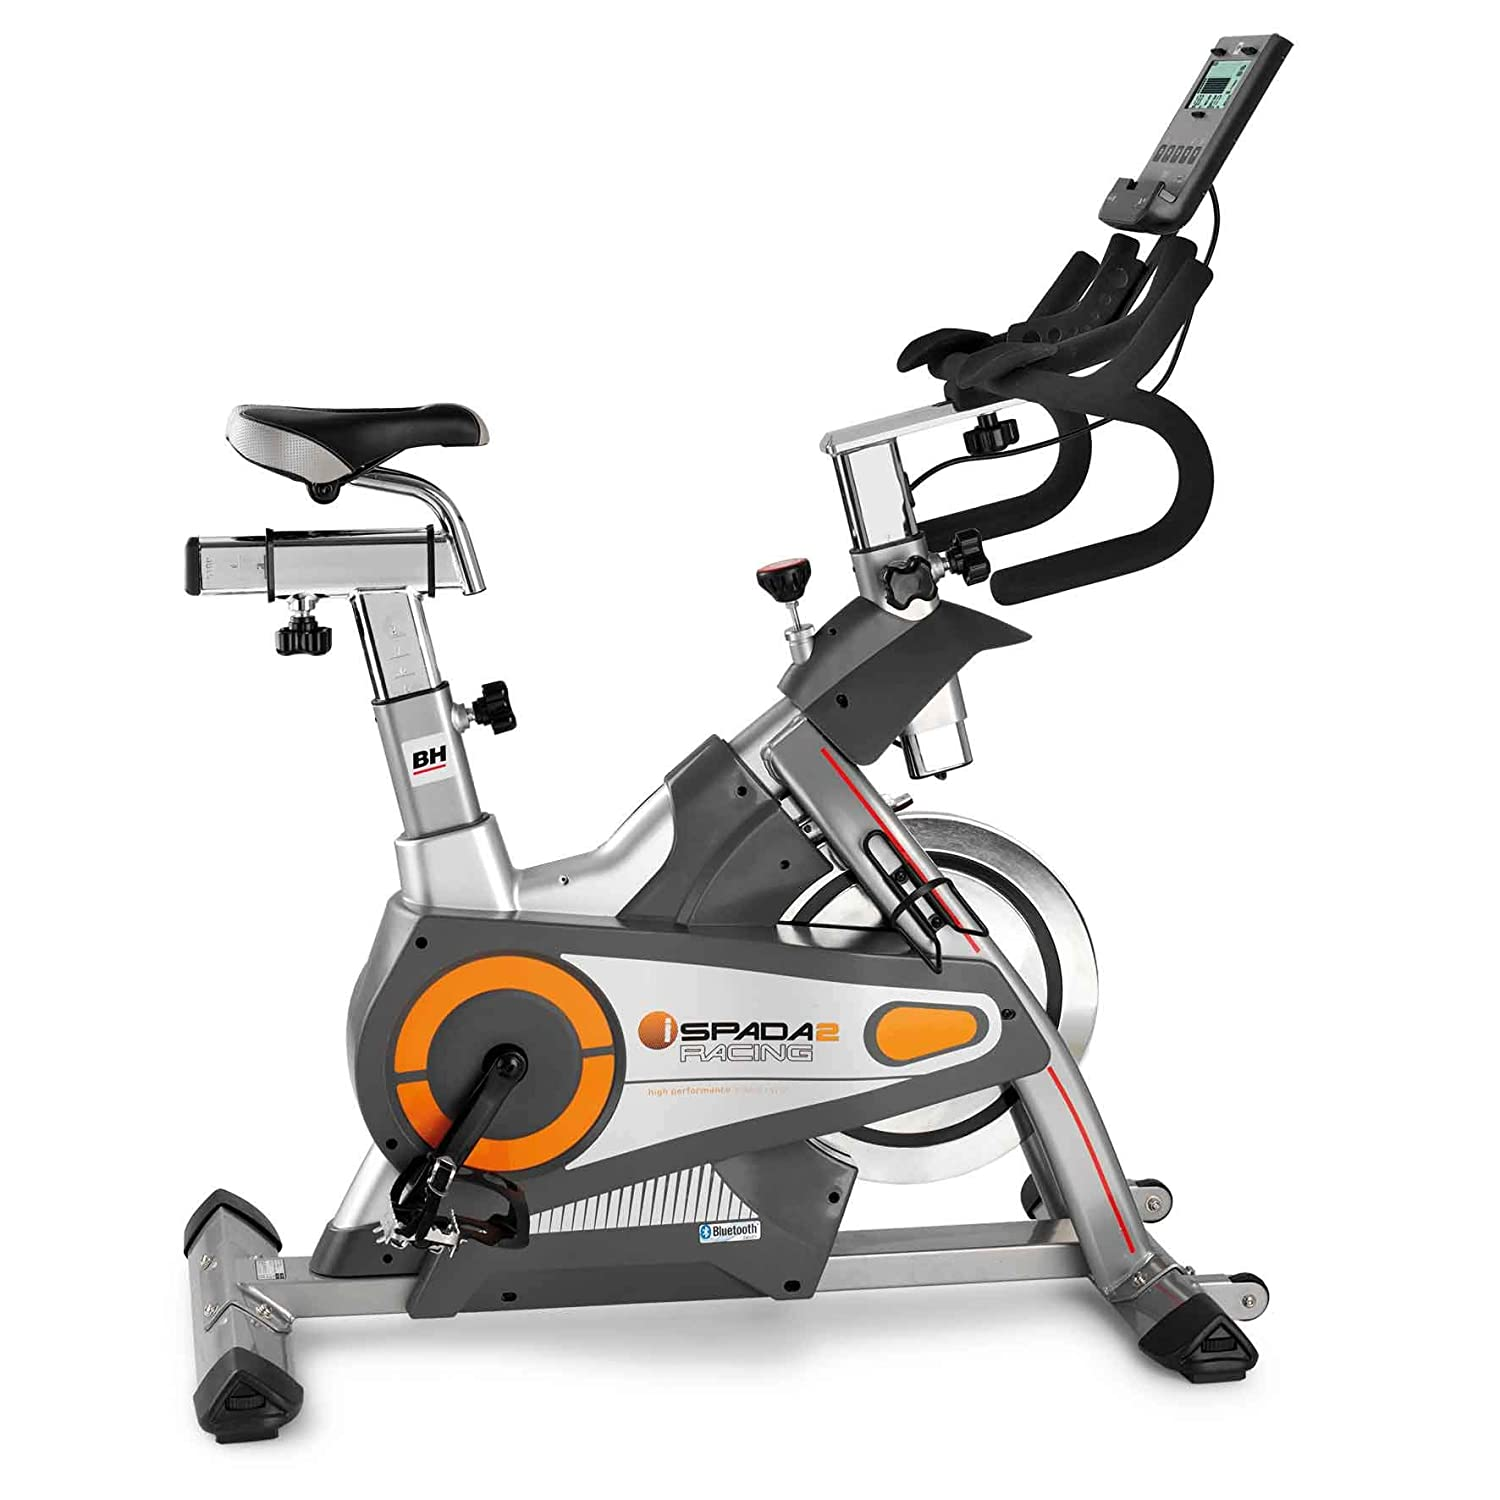 BH Fitness i.SPADA 2 RACING H9356I Indoorbike - Indoorcycling - 3-faches Bremssystem - Android Apple kompatibel